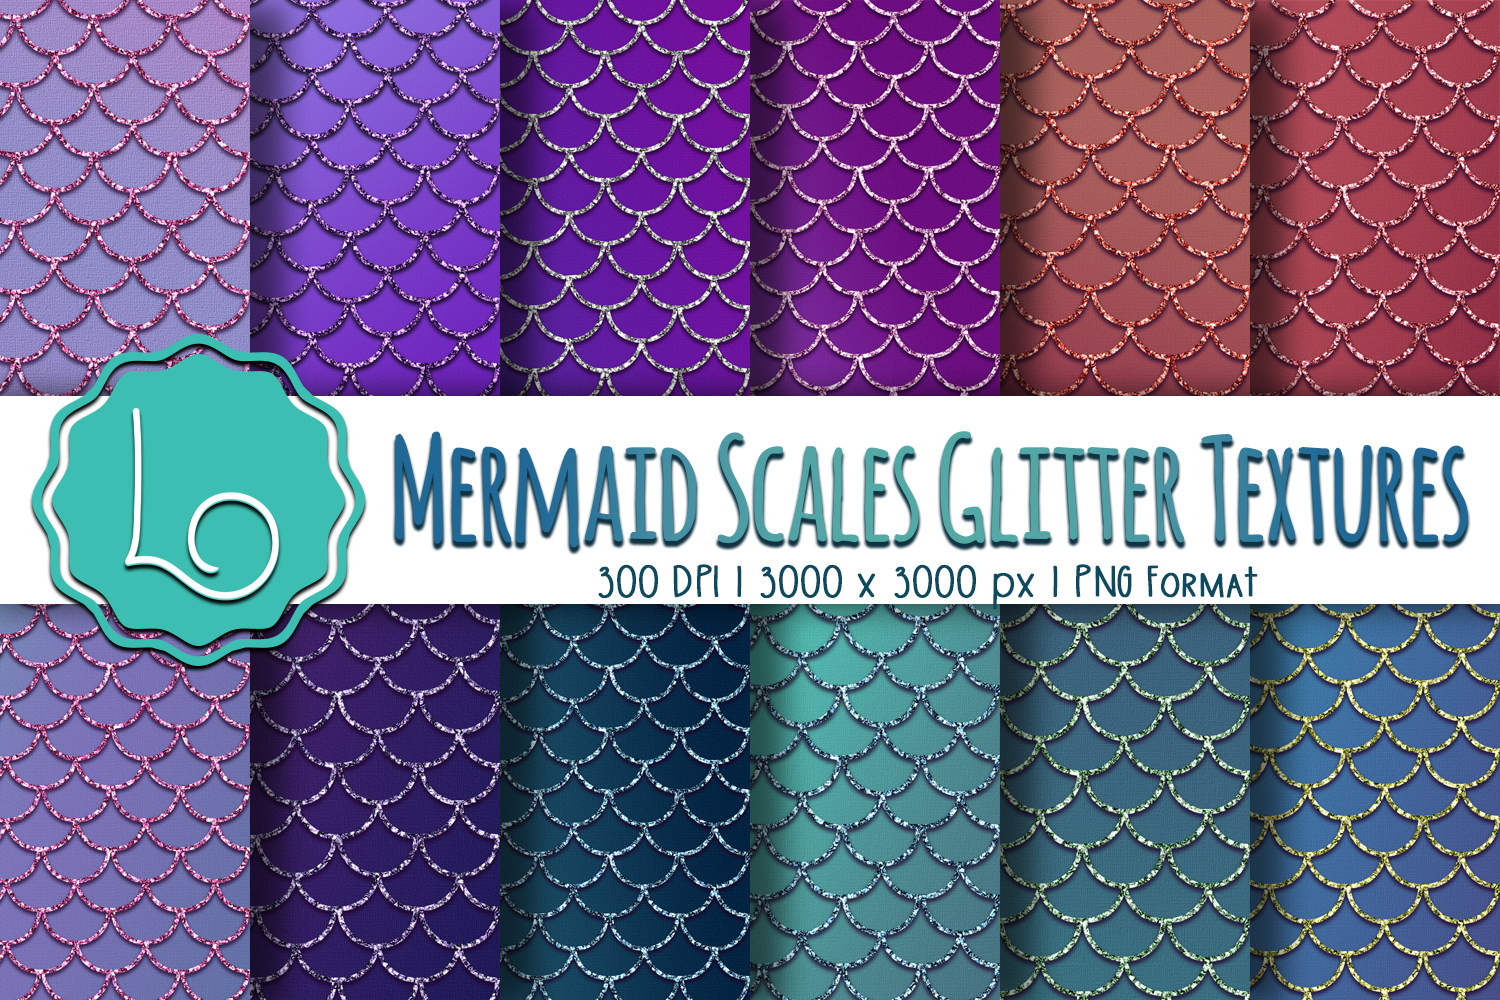 Download Free Mermaid Scales Glitter Textures Graphic By La Oliveira for Cricut Explore, Silhouette and other cutting machines.